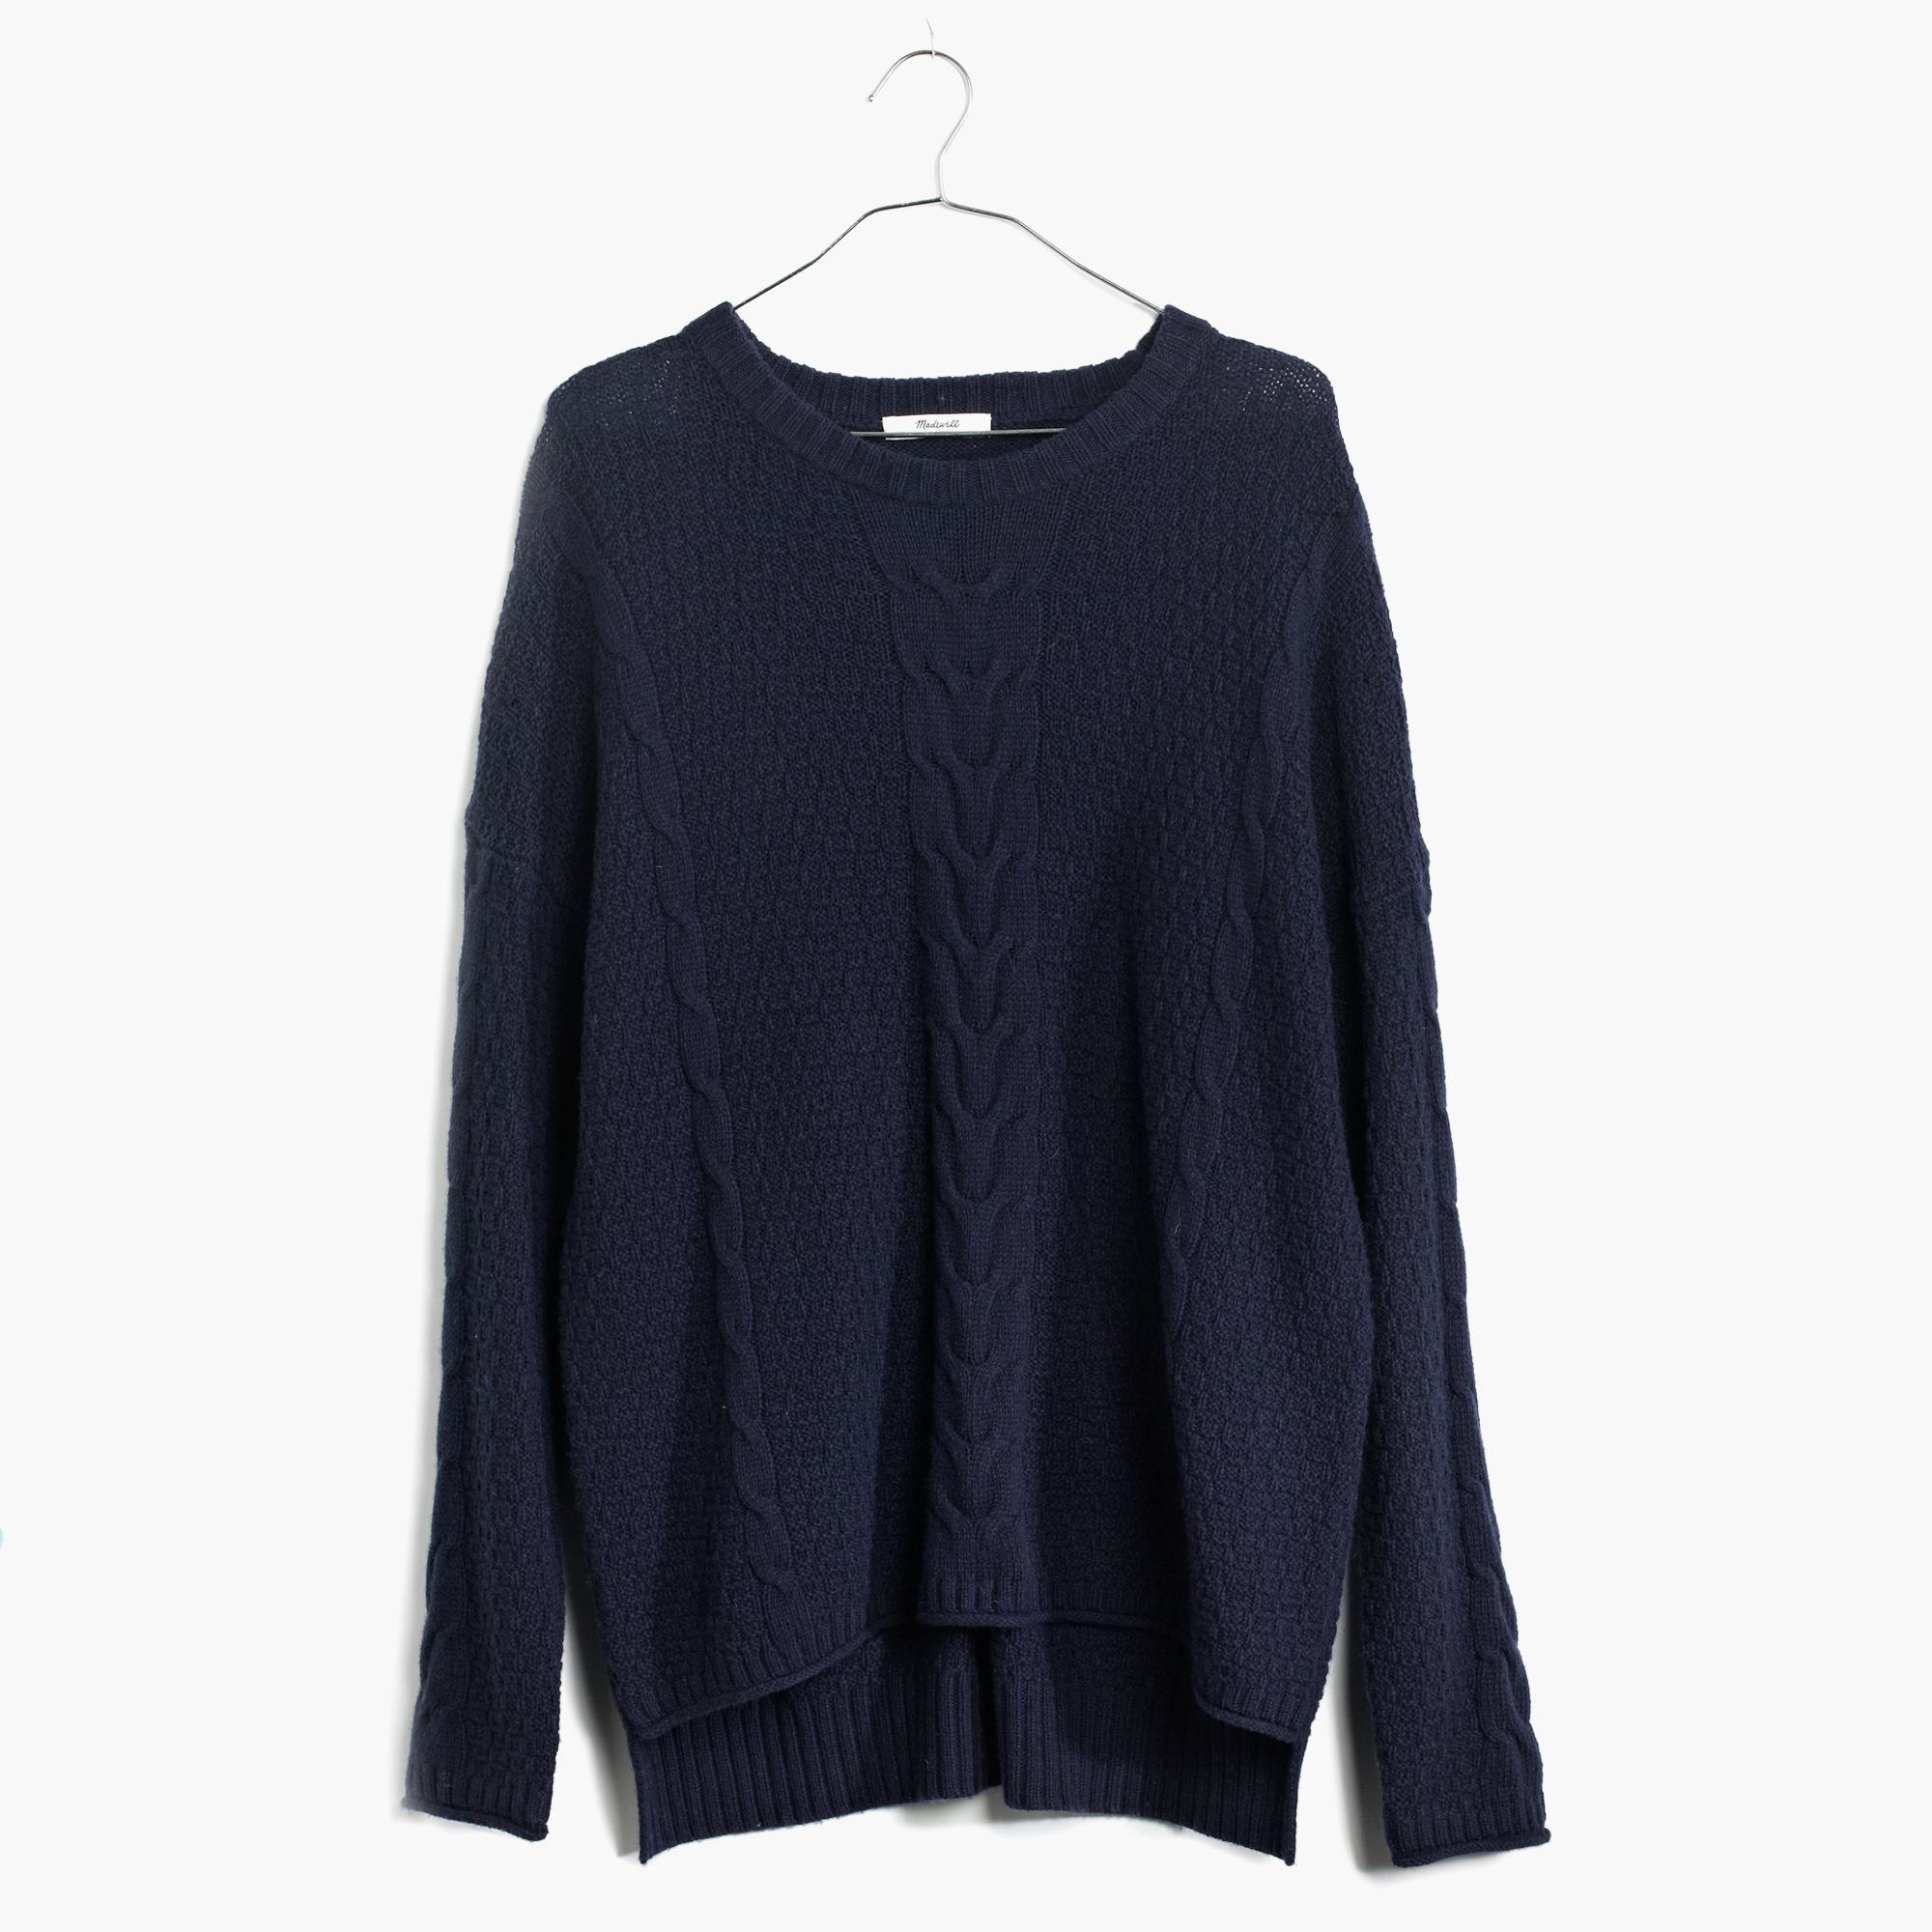 Madewell Easy Cable Pullover Sweater in Blue | Lyst